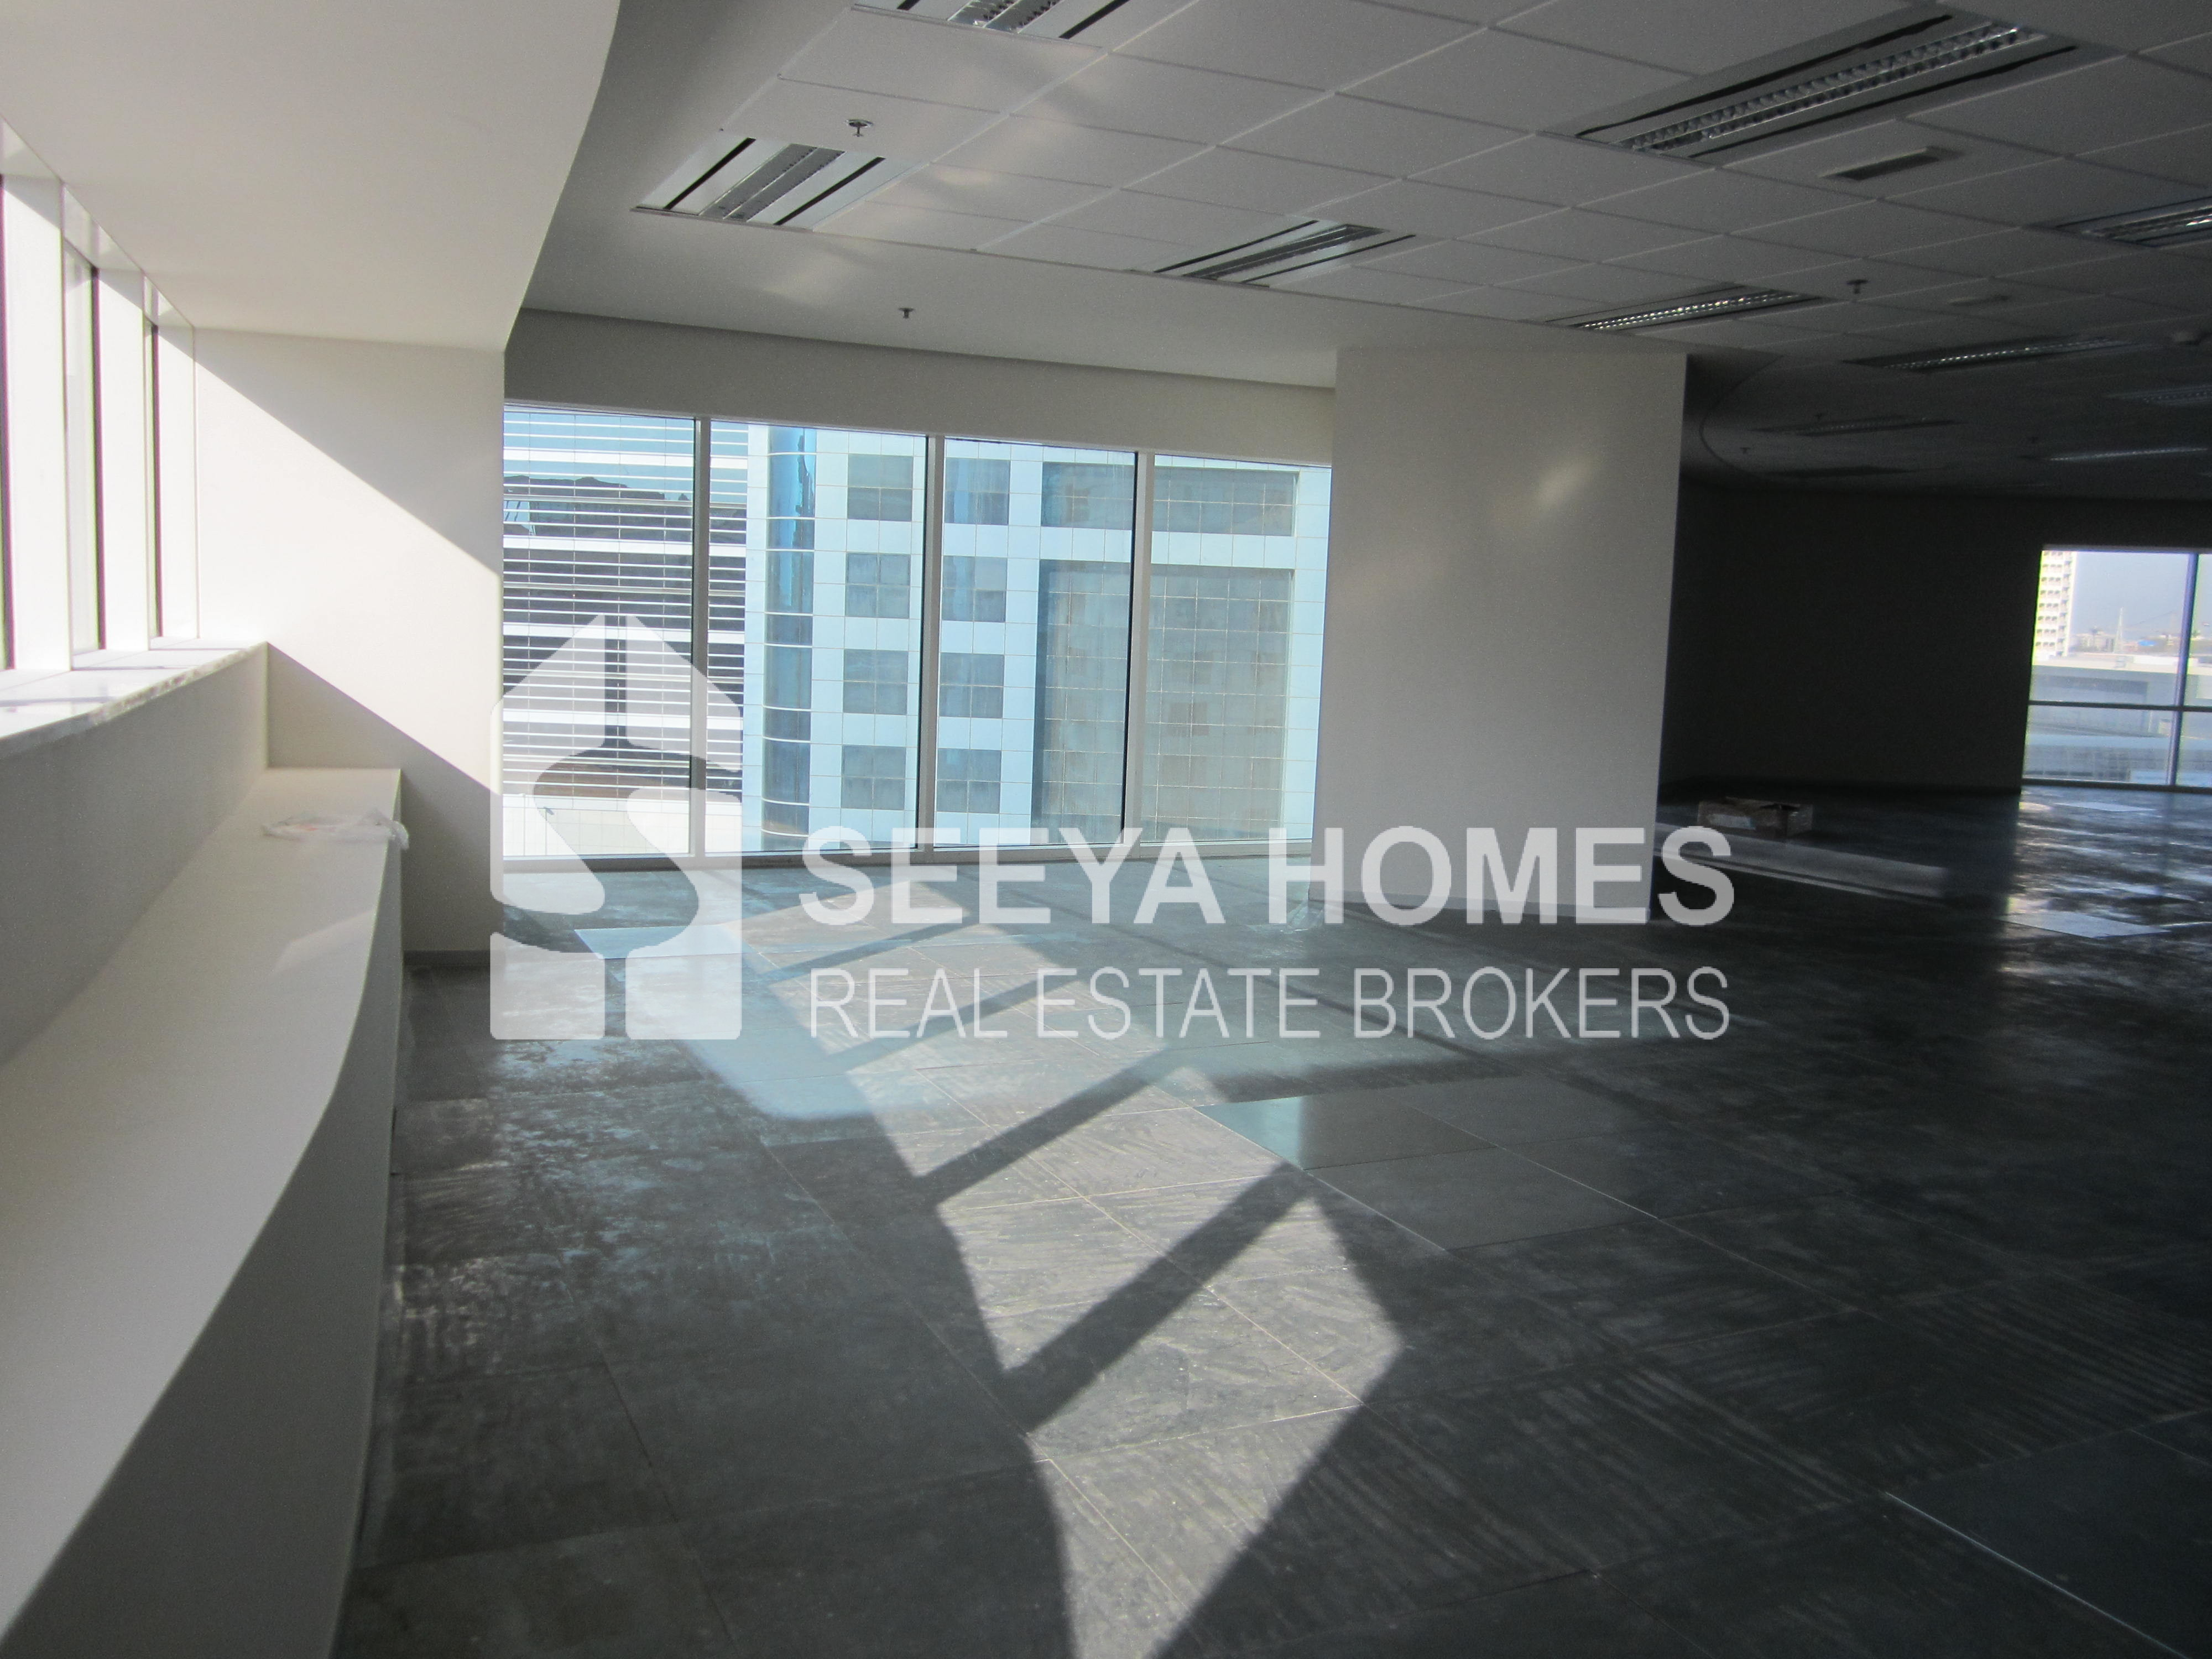 Stunning Shell & Core Office Space for Rent